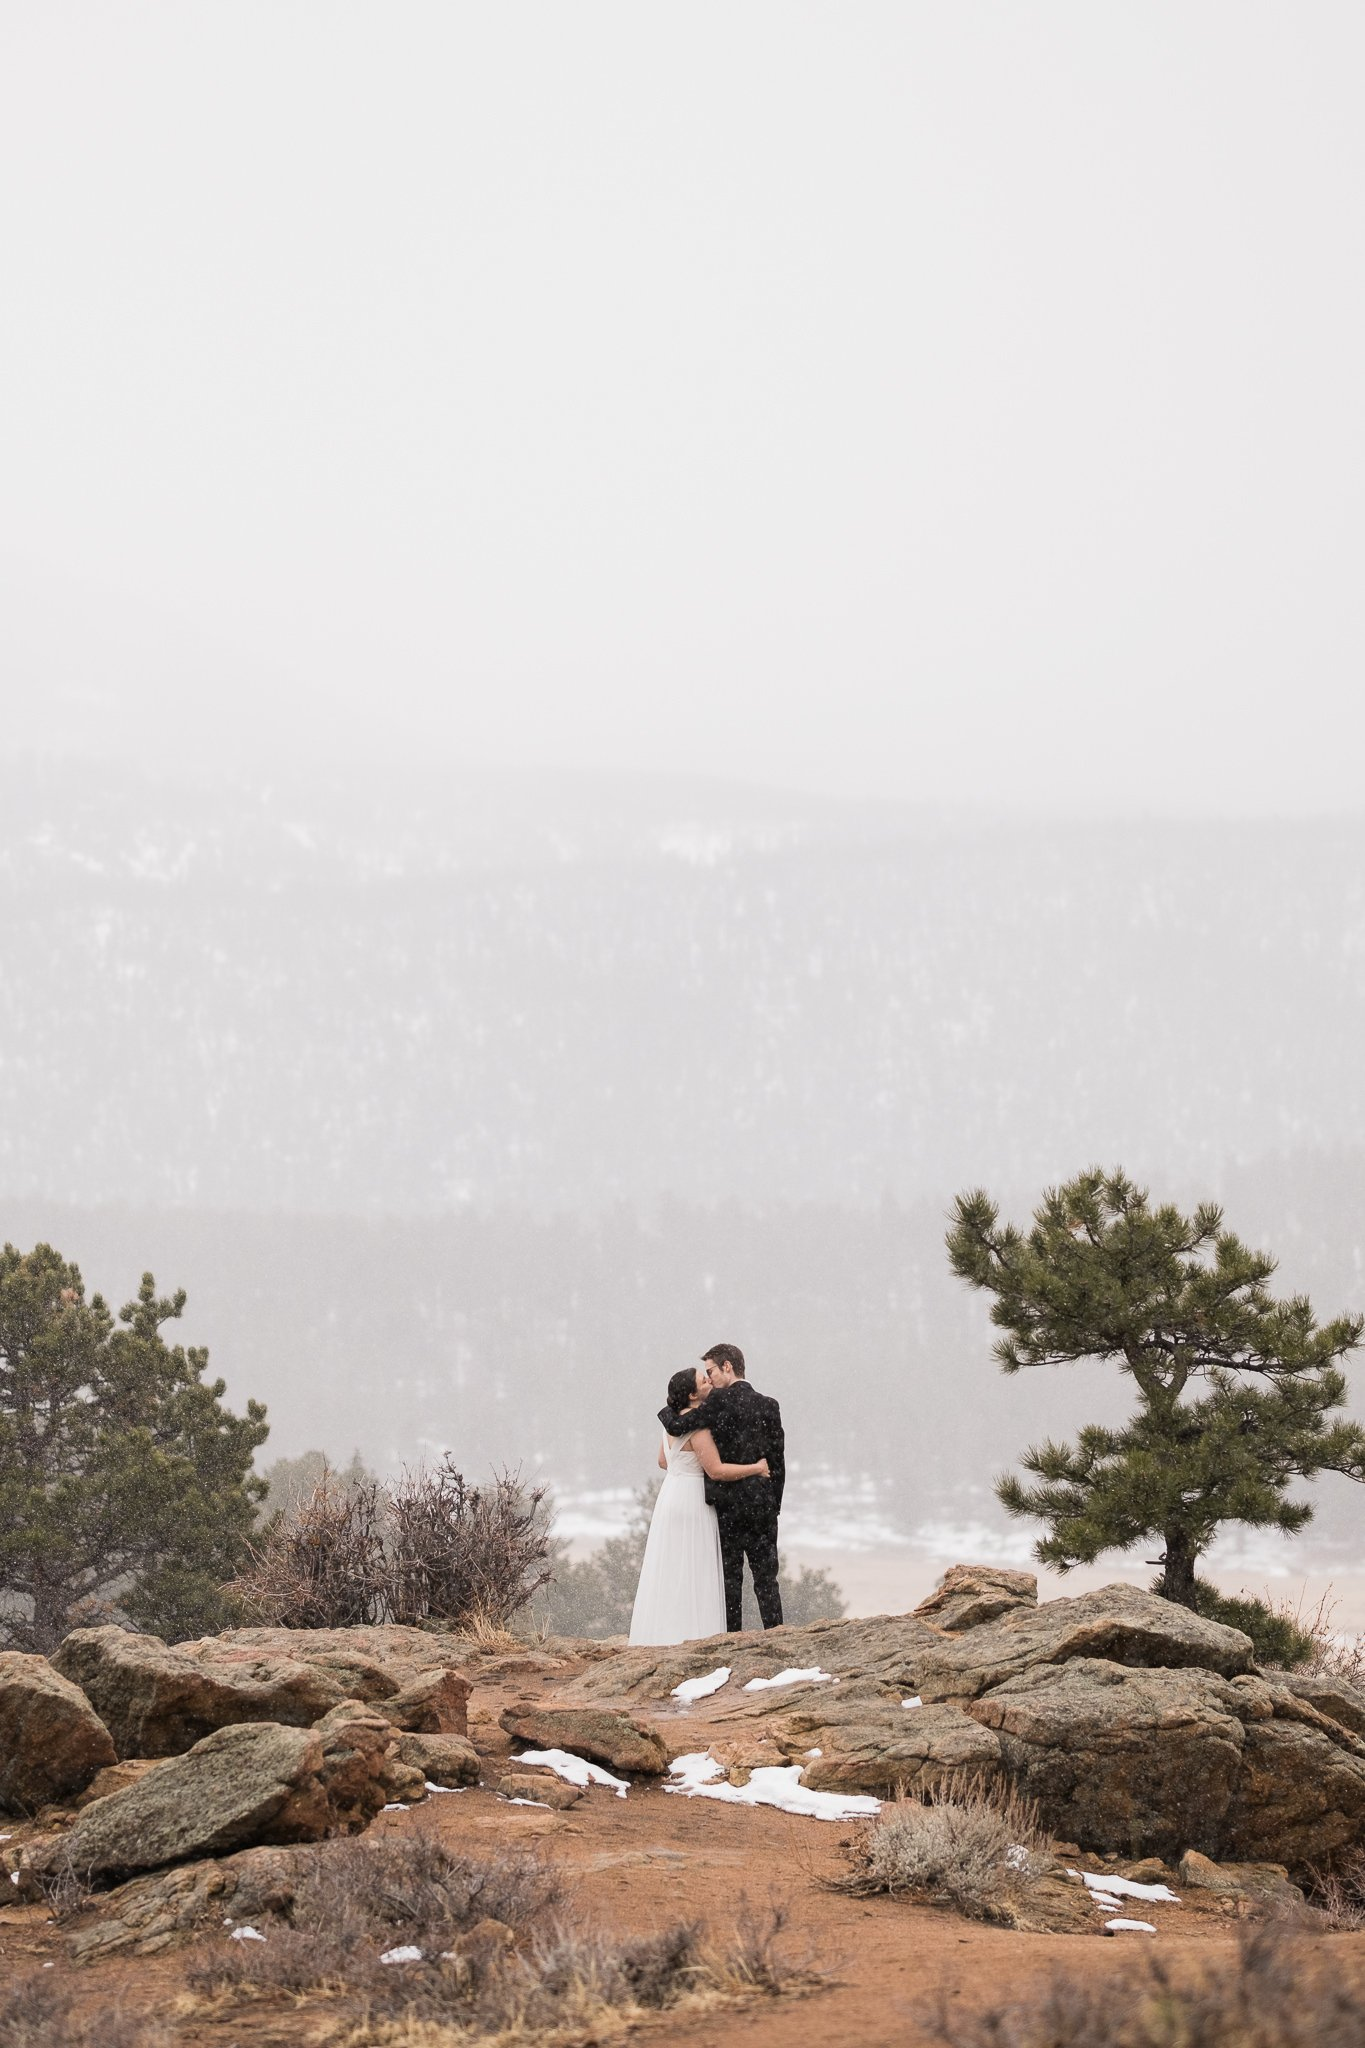 Winter elopement at 3M Curve in Colorado